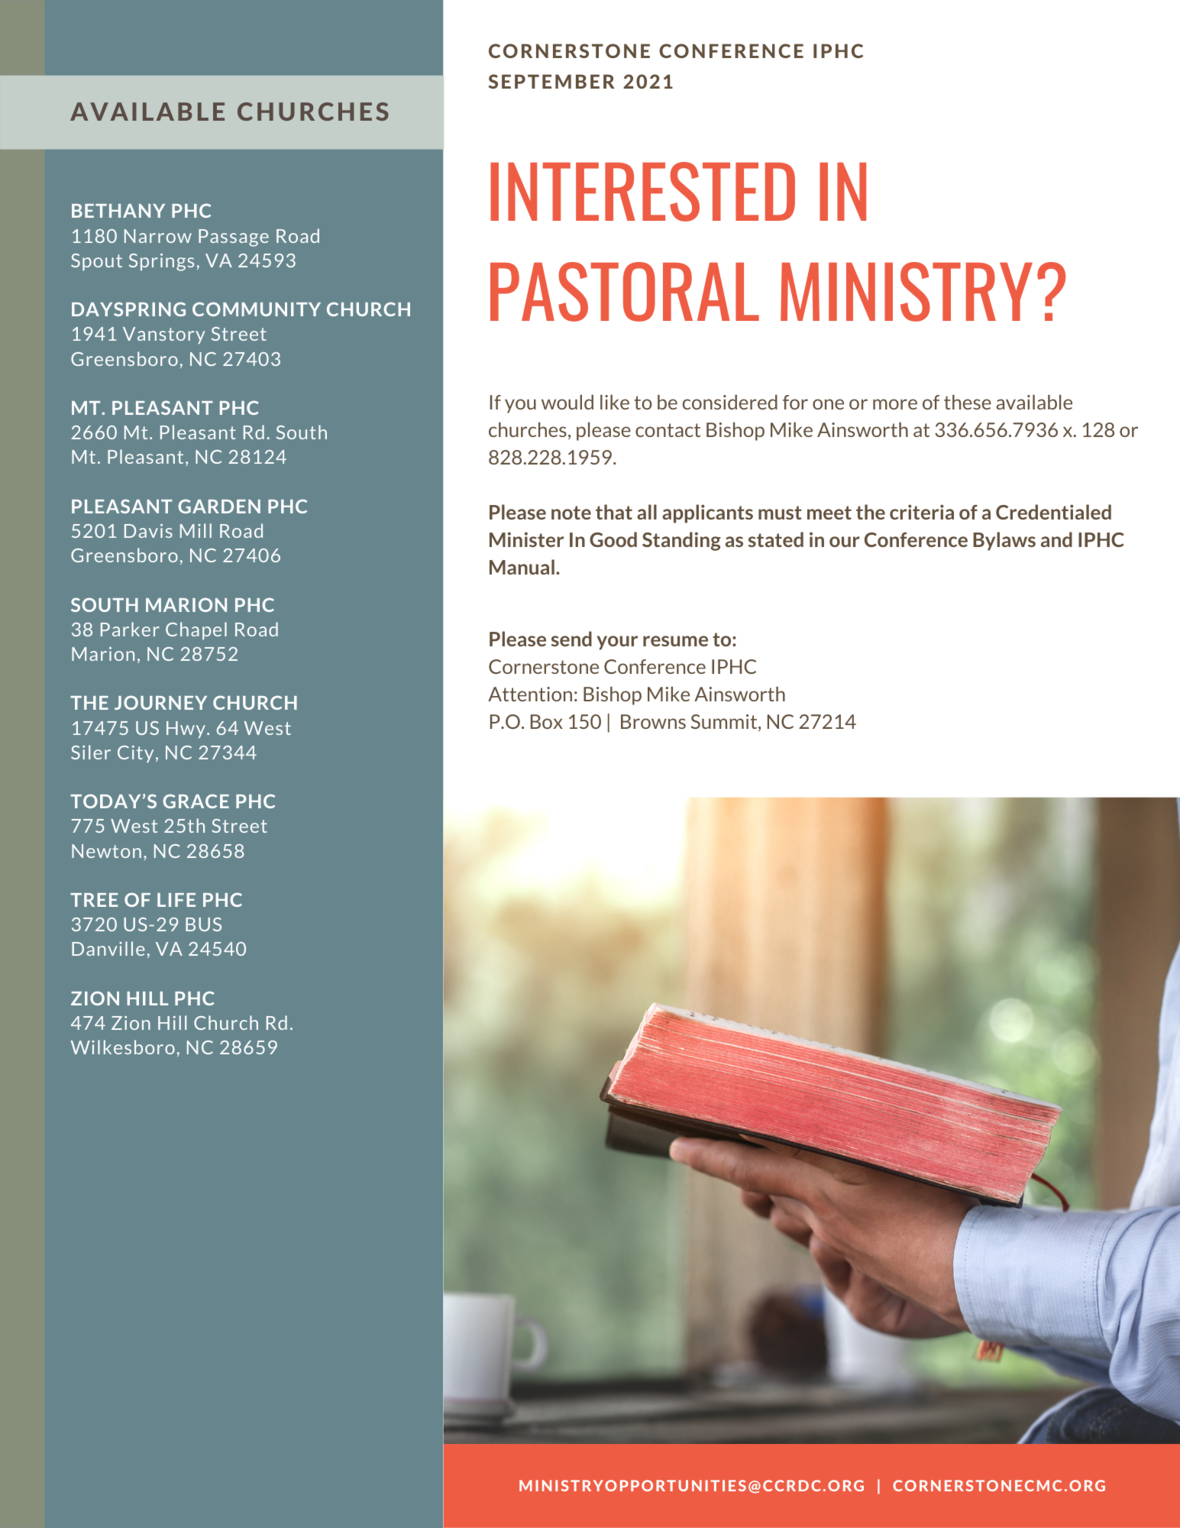 Copy of 2021 CCRDC Ministry Opportunities-4